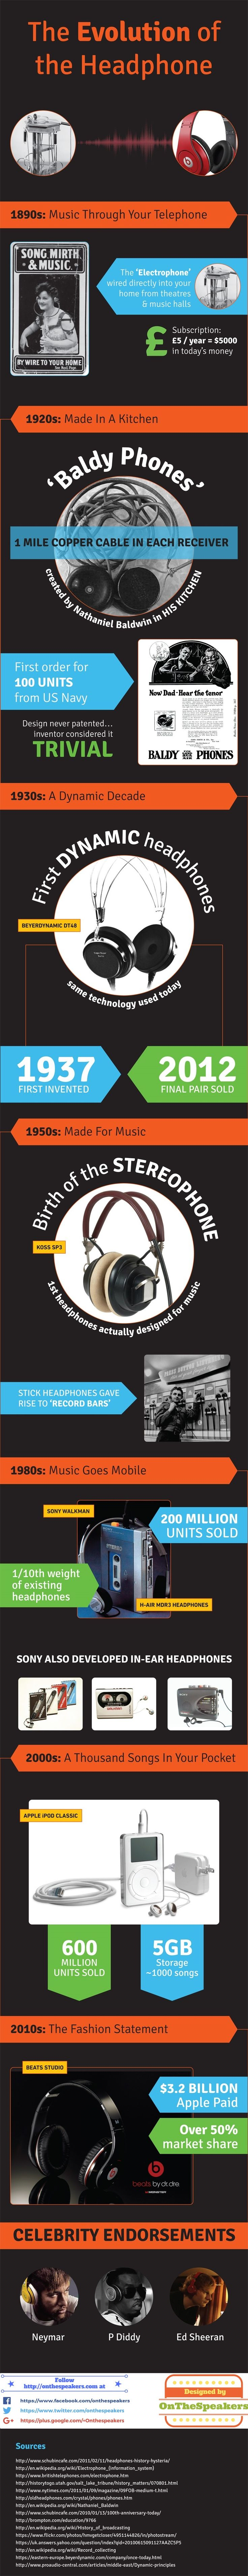 Complete Evolution of Headphones at http://onthespeakers.com/